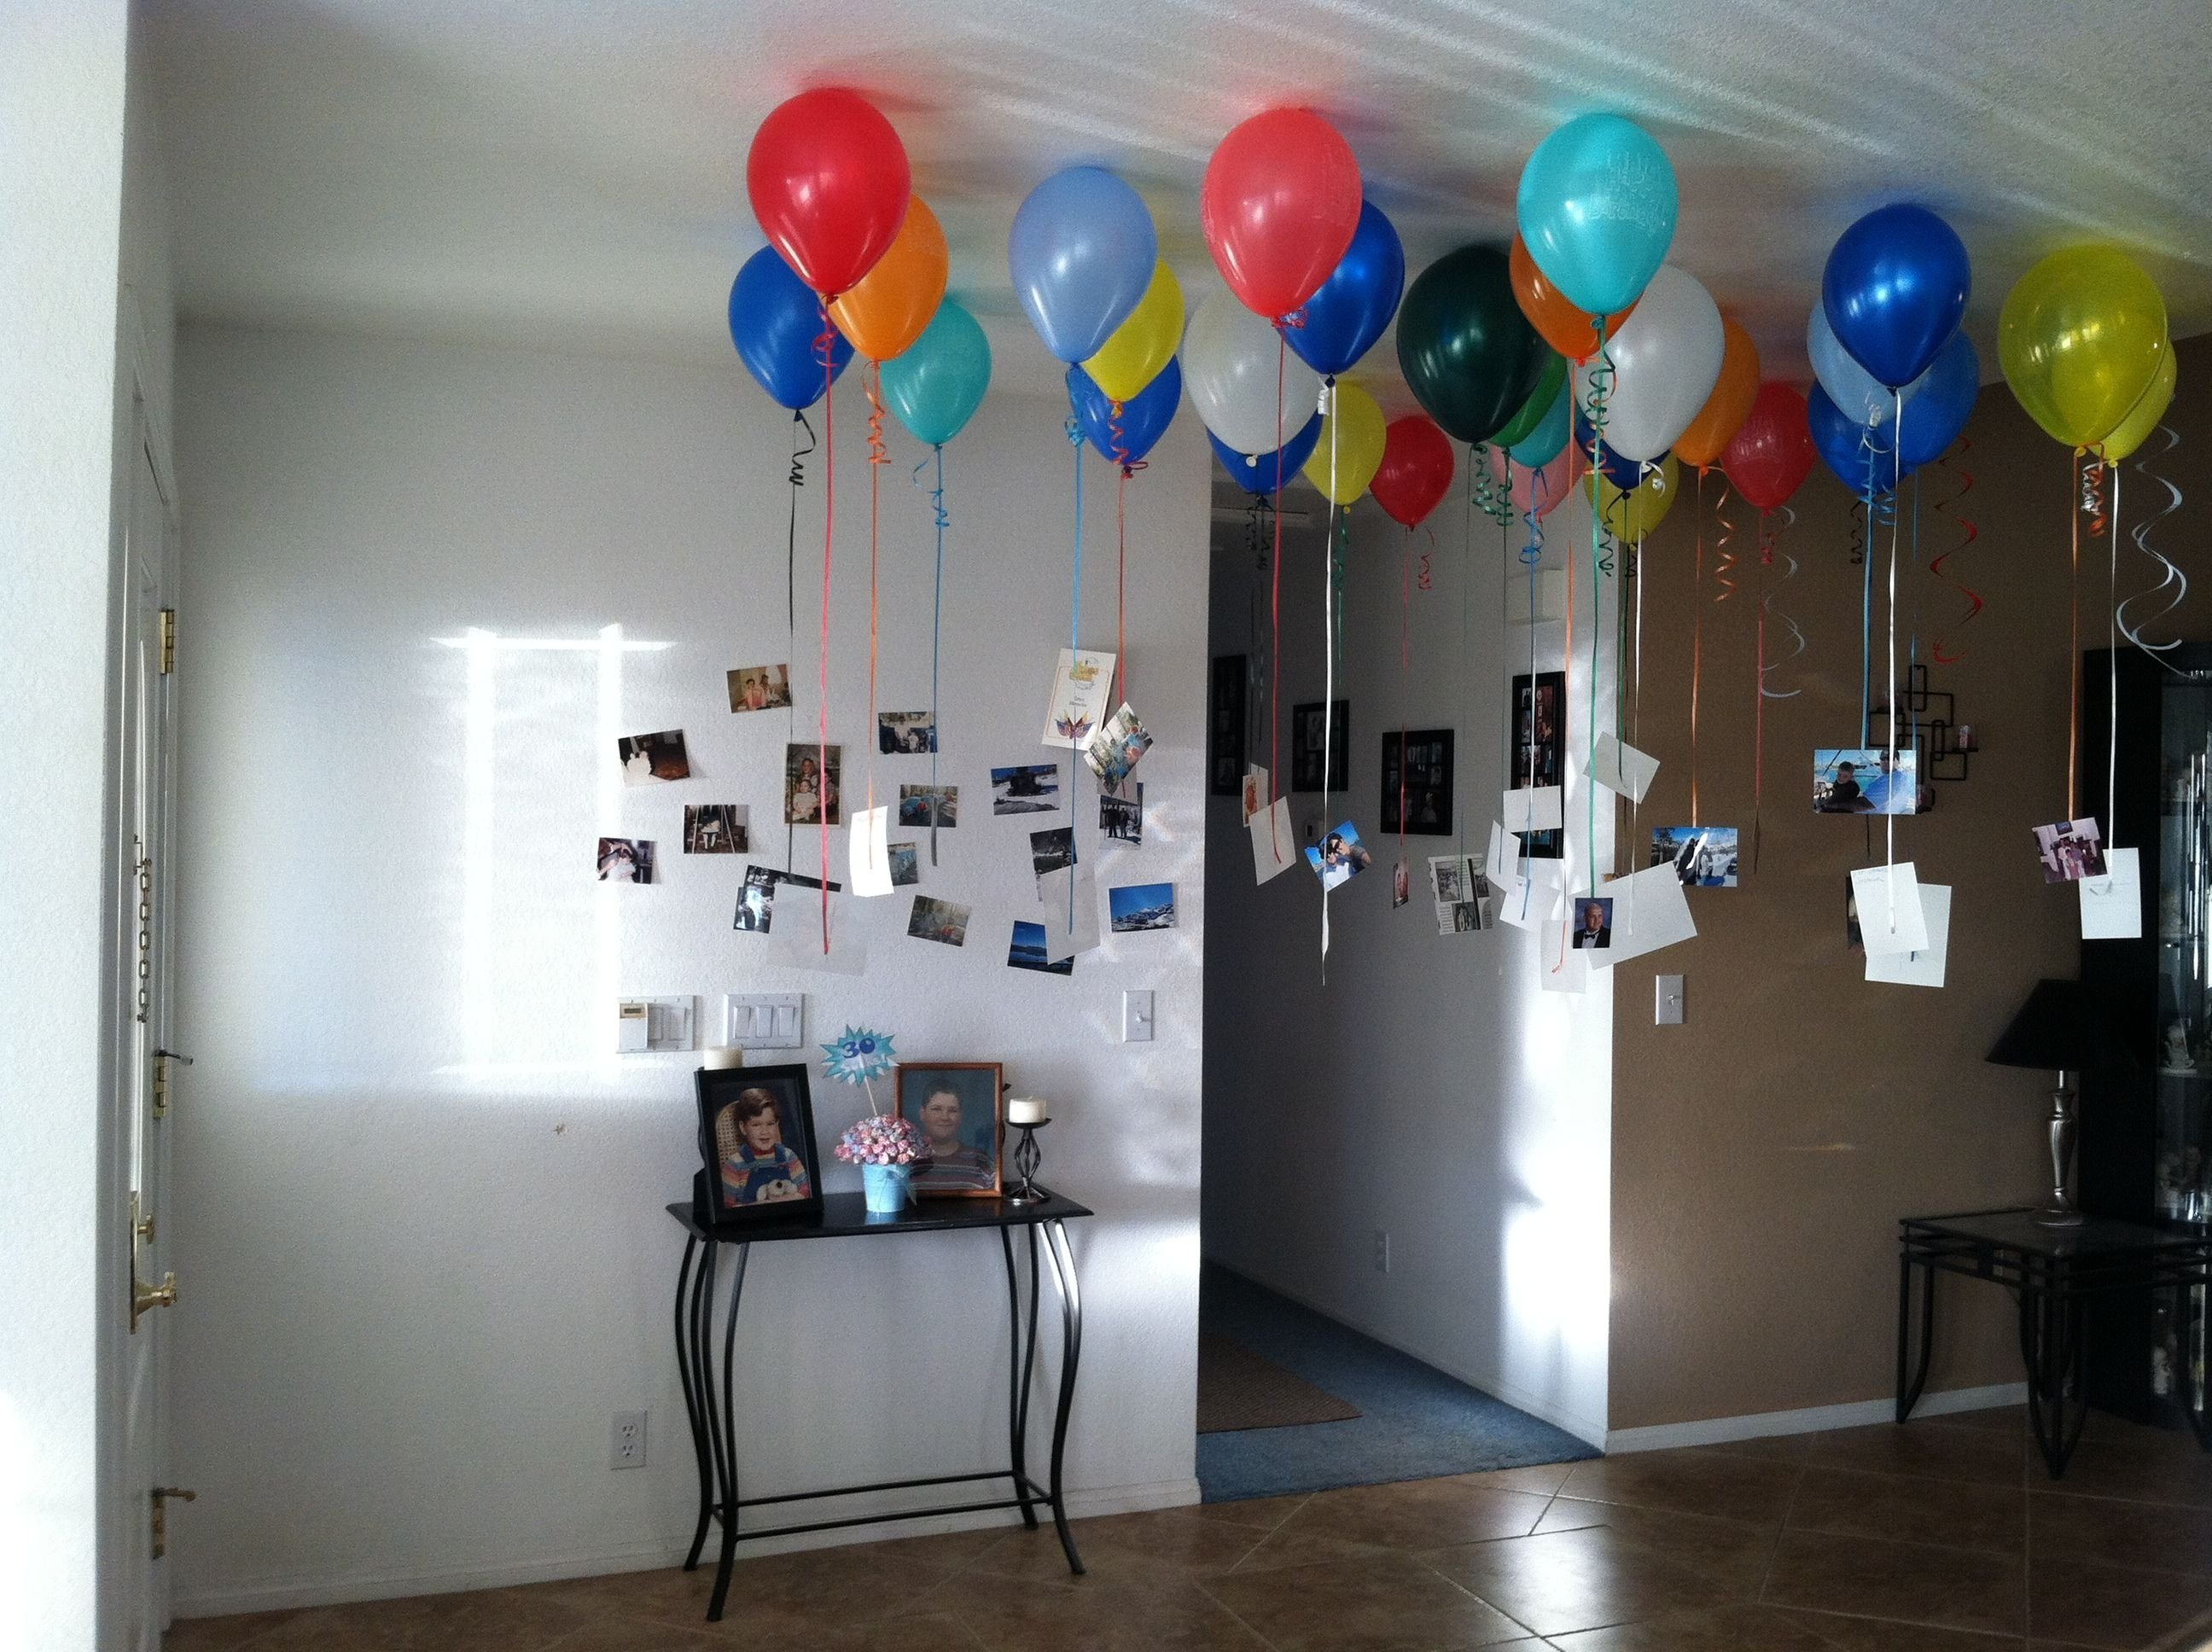 10 Lovely Birthday Ideas For Husband On A Budget did this in my entry way for husbands 30th birthday 30 balloons 2